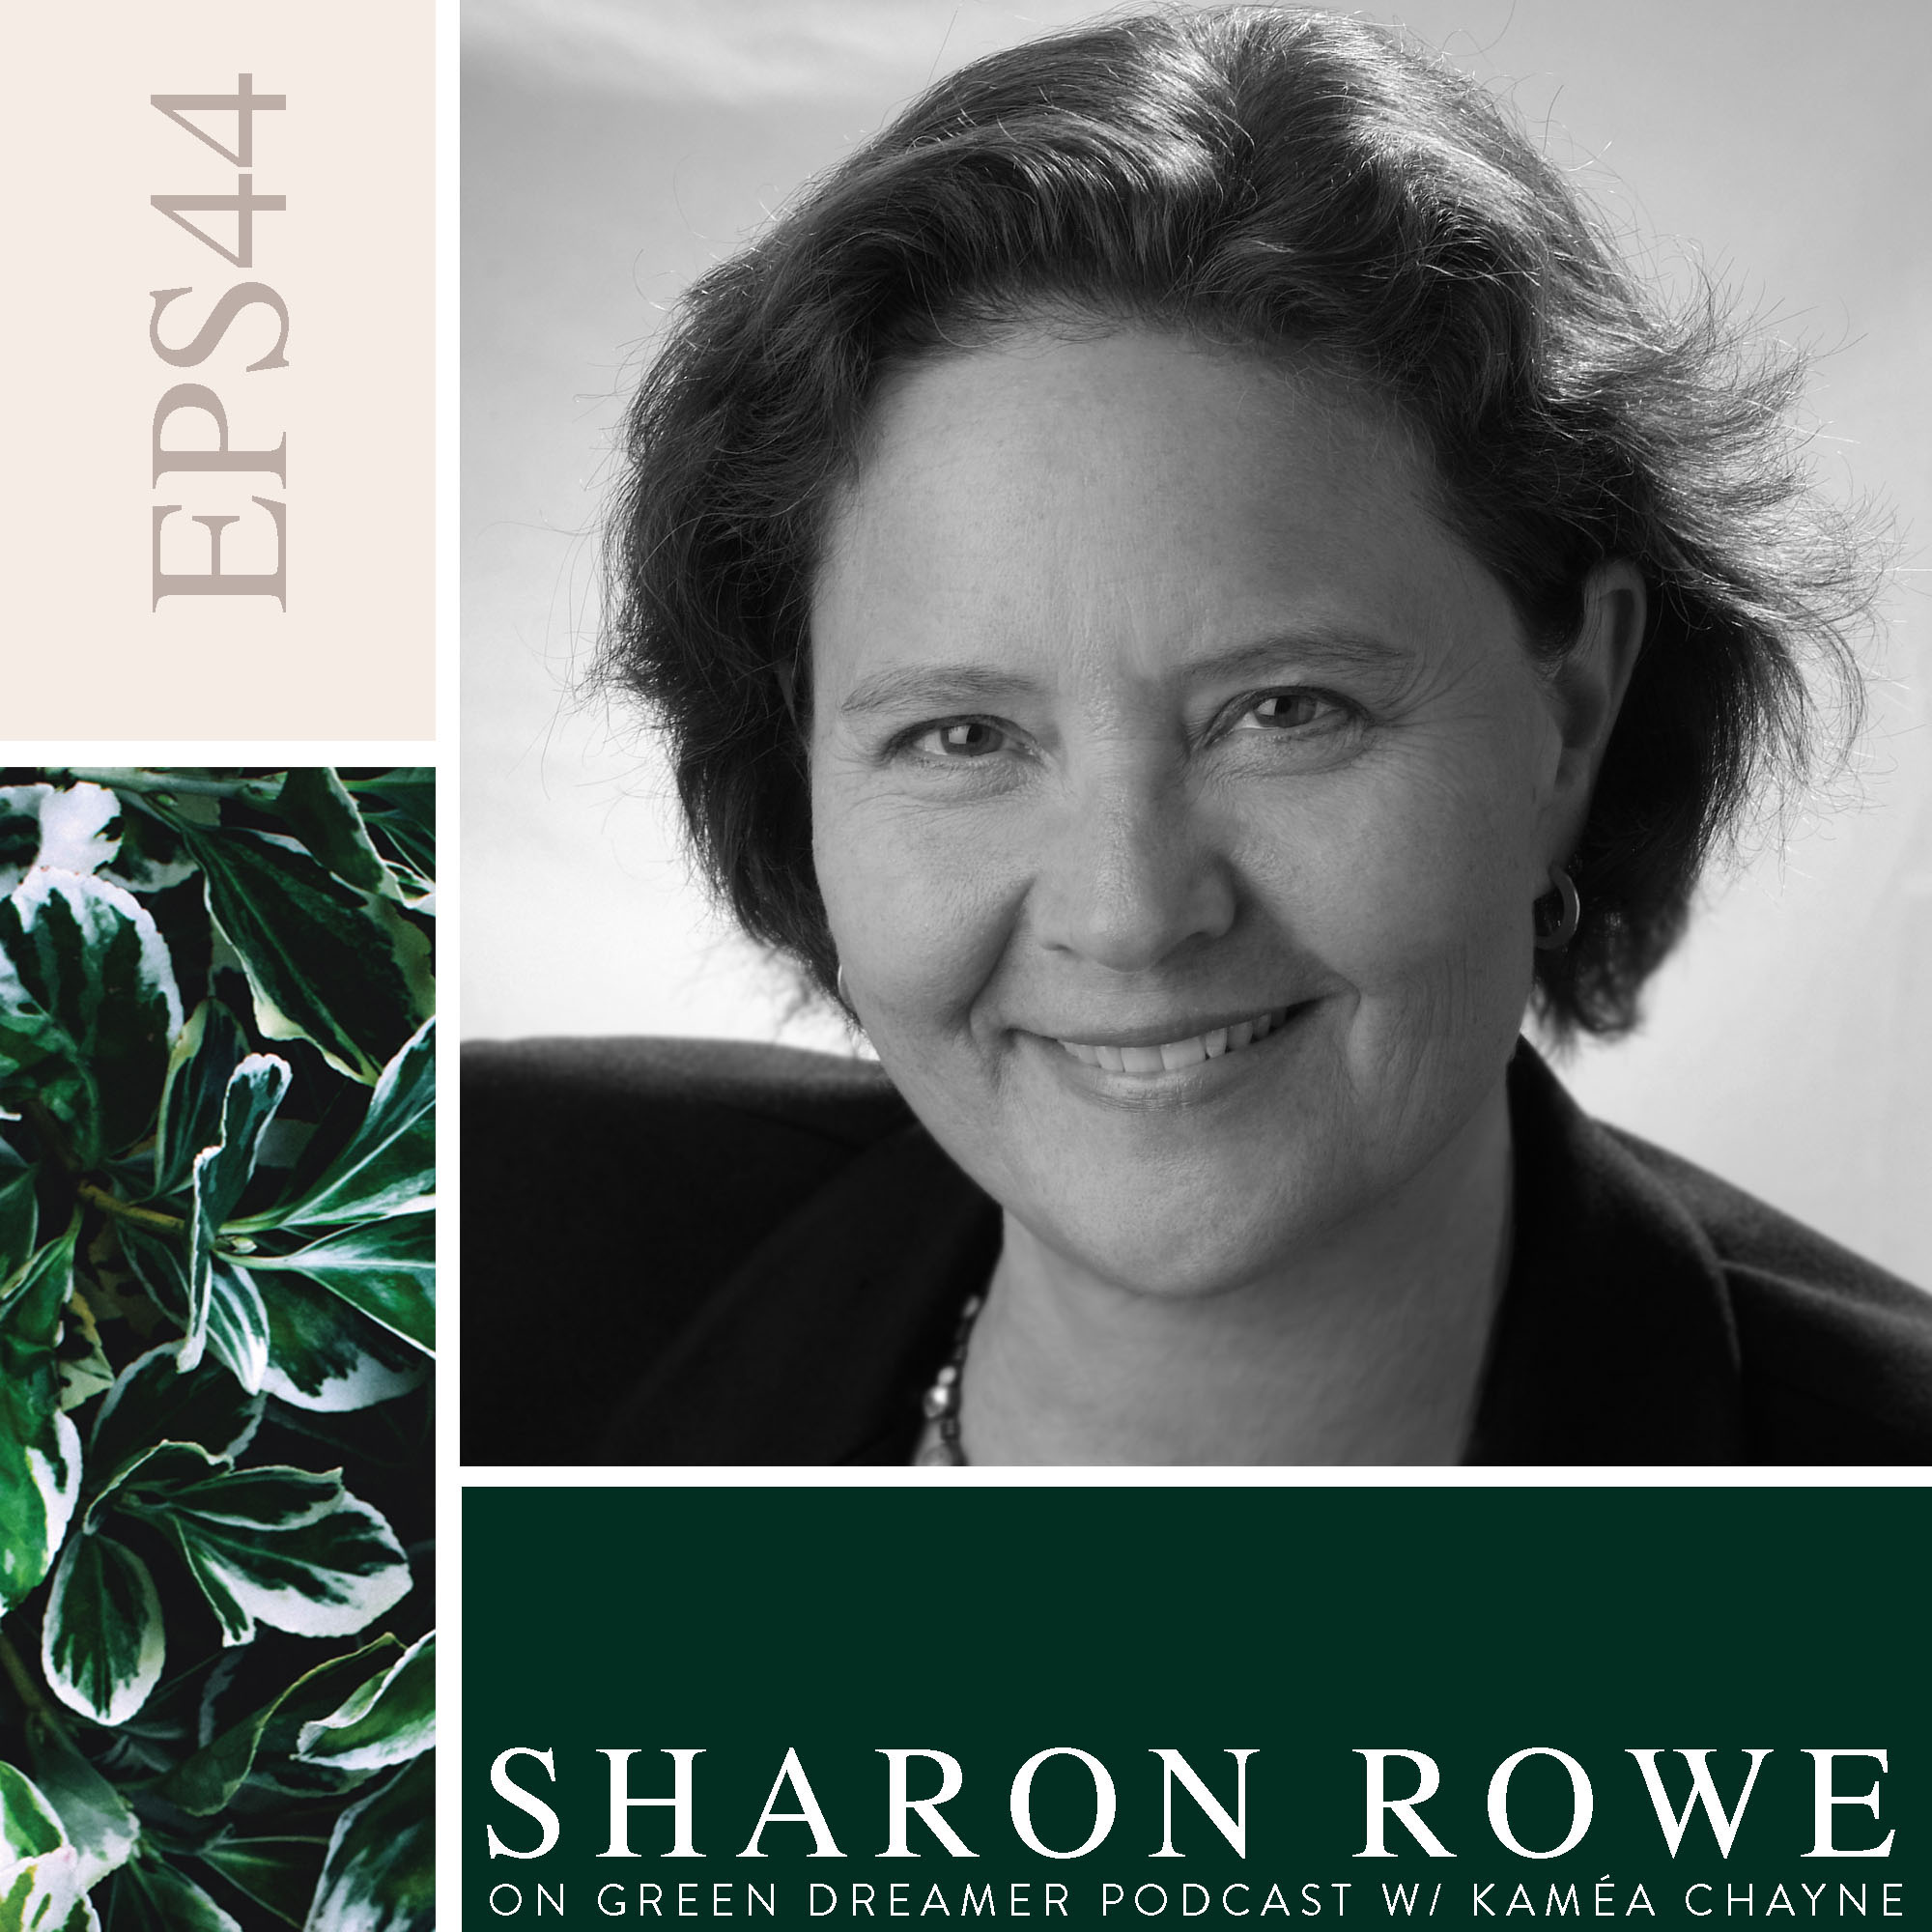 44) BW Sharon-Rowe-of-ECOBAGS-talks-sustainability-on-Green-Dreamer-Podcast-with-Kaméa-Chayne.jpg